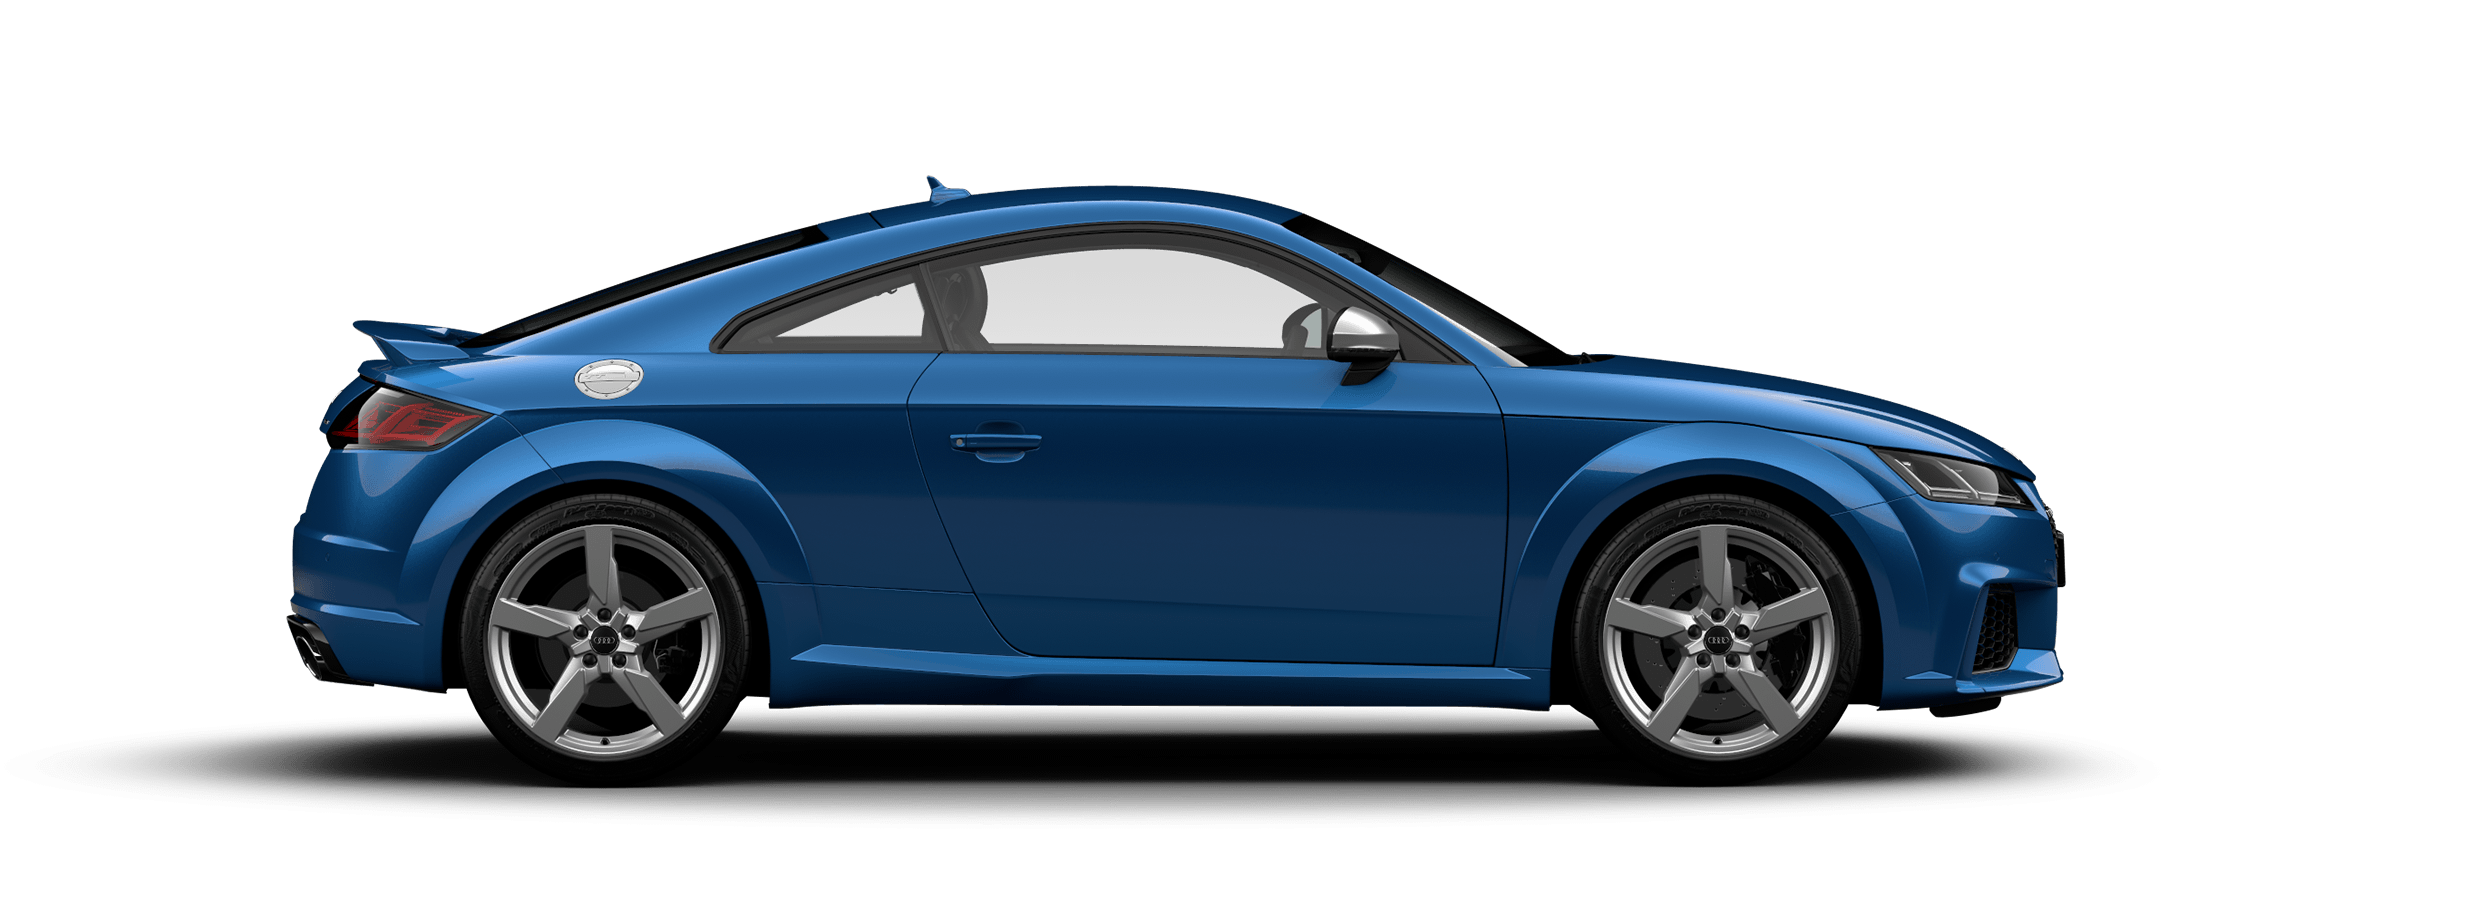 https://cogcms-images.azureedge.net/media/62373/tt-rs-coupe.png